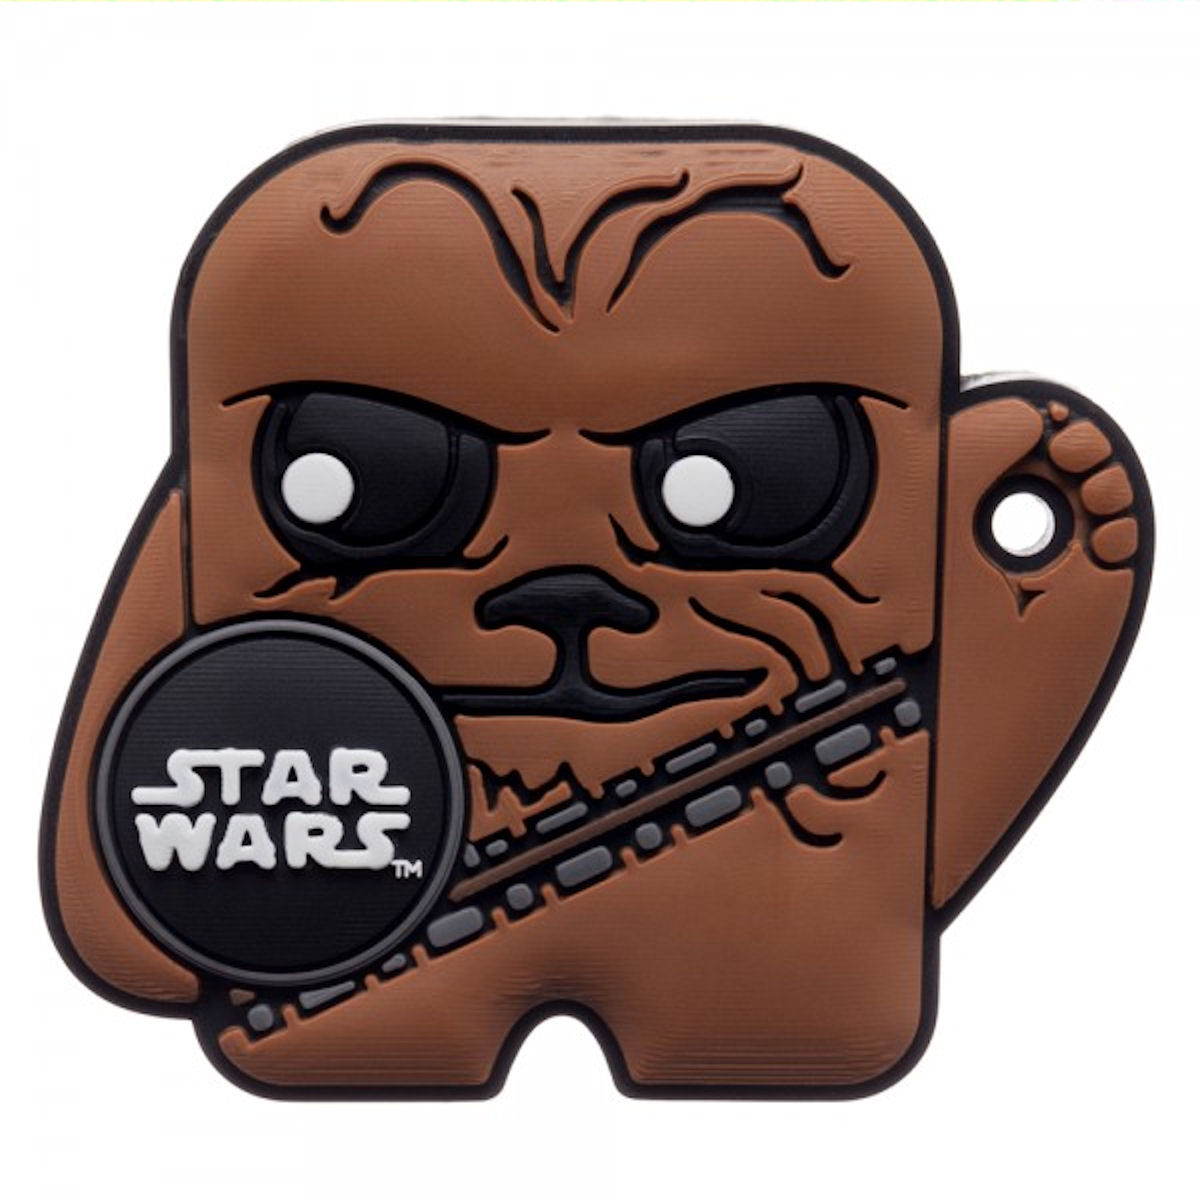 Star Wars Foundmi Bluetooth Tracking Tag for Android & IOS (Chewbacca)